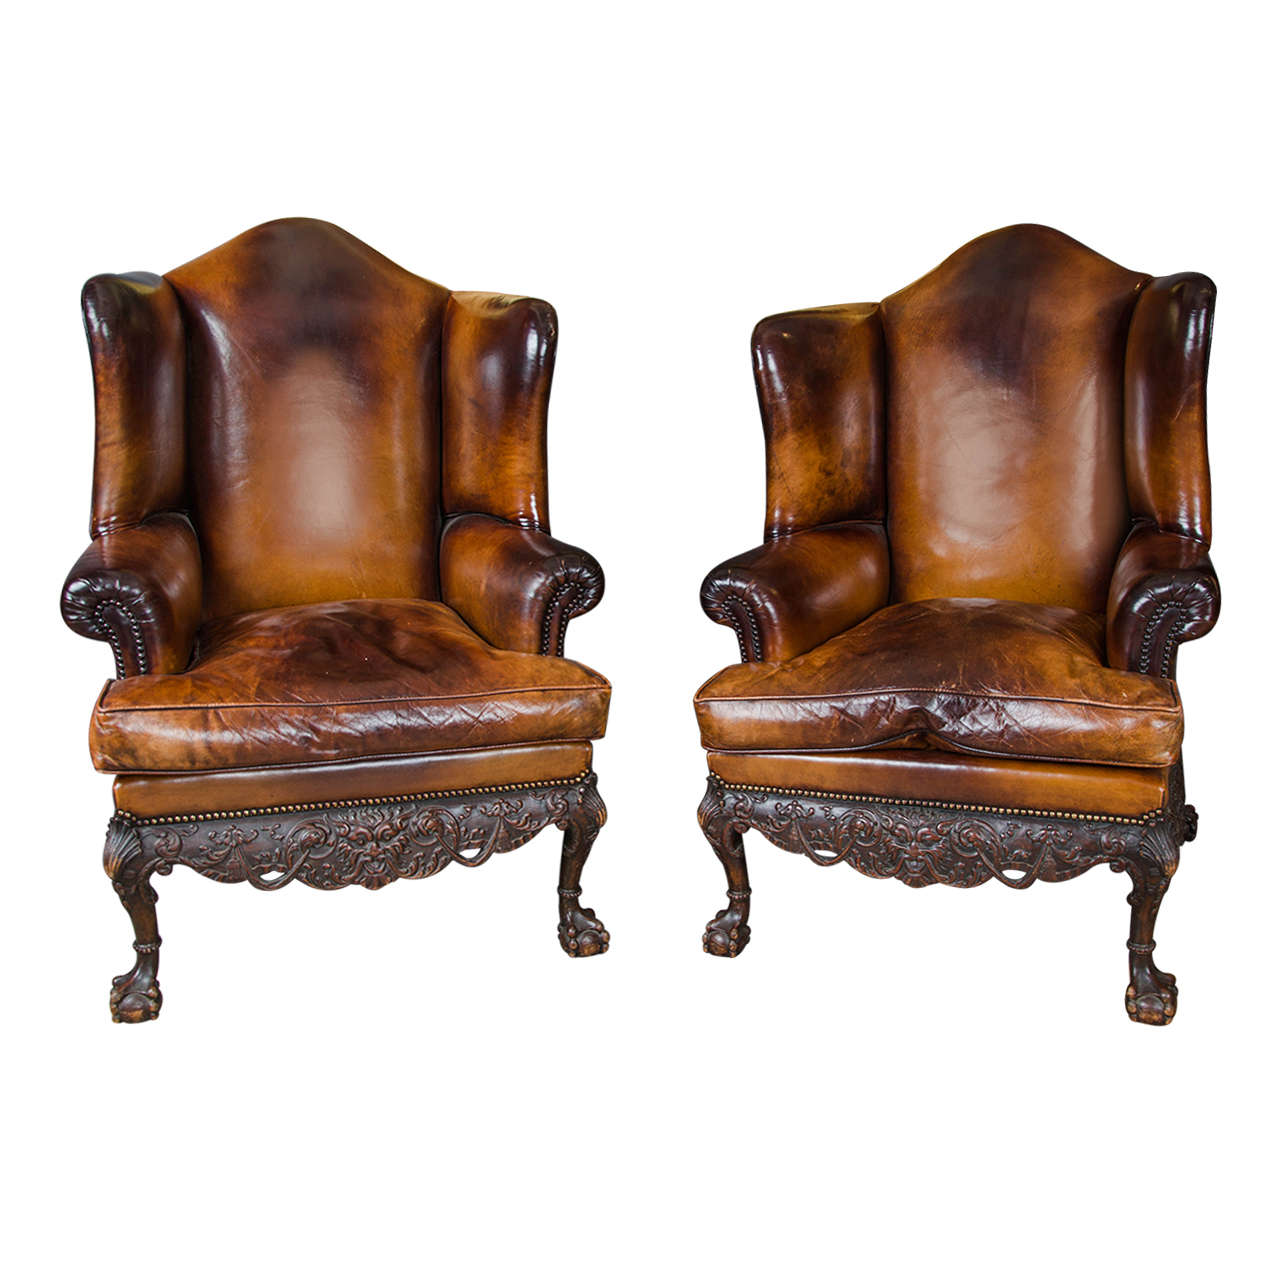 Antique wing chair - Antique Wing Chair 40